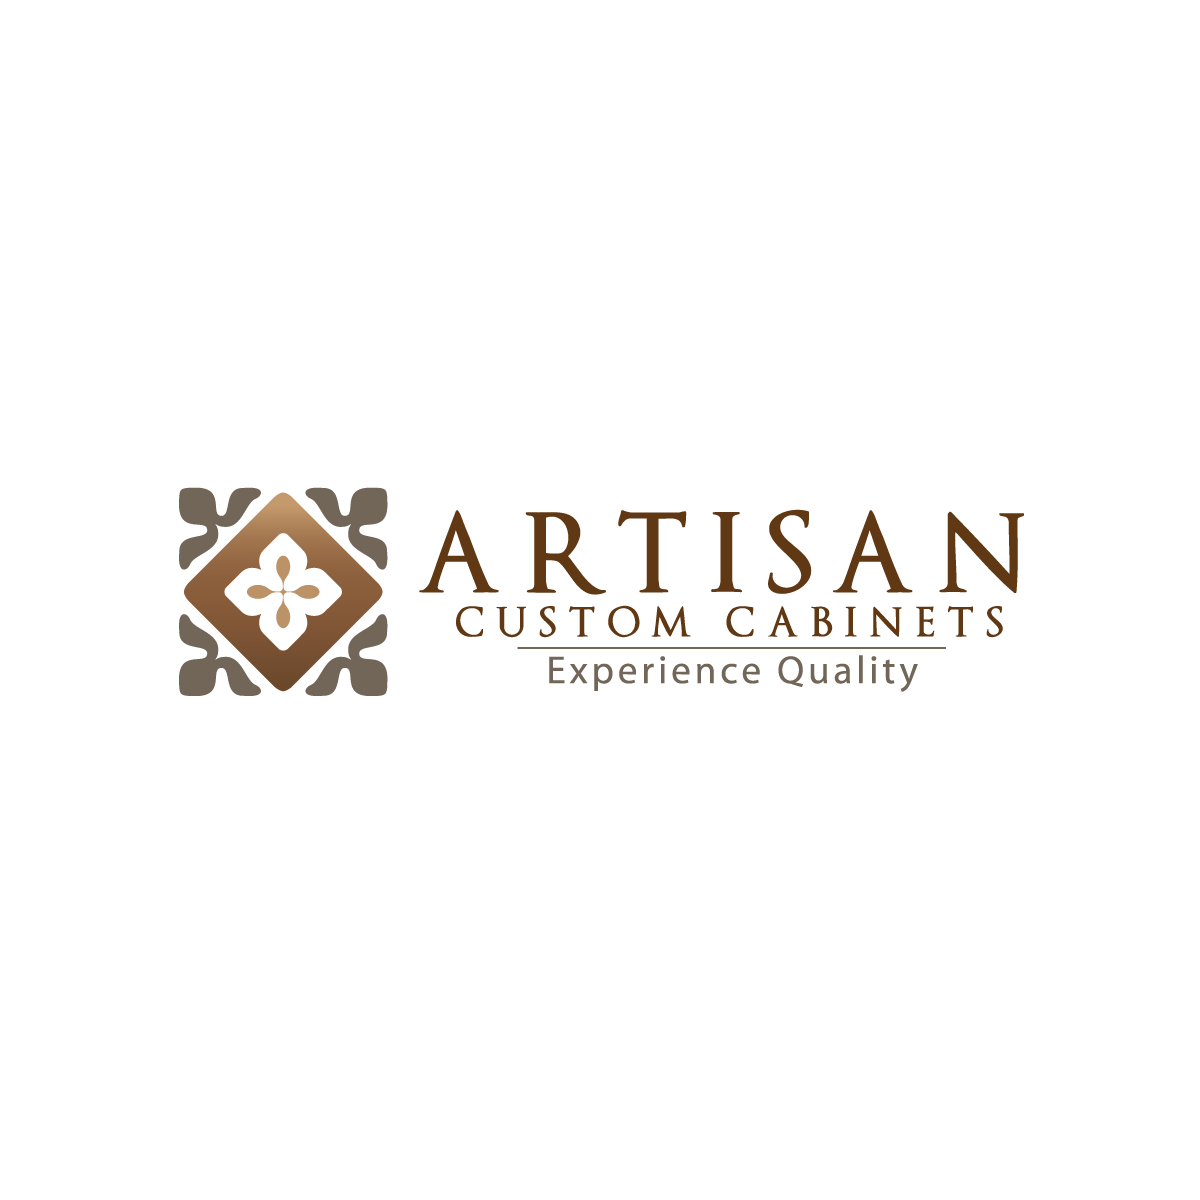 Logo Design by rockin - Entry No. 76 in the Logo Design Contest Creative Logo Design for Artisan Custom Cabinets.